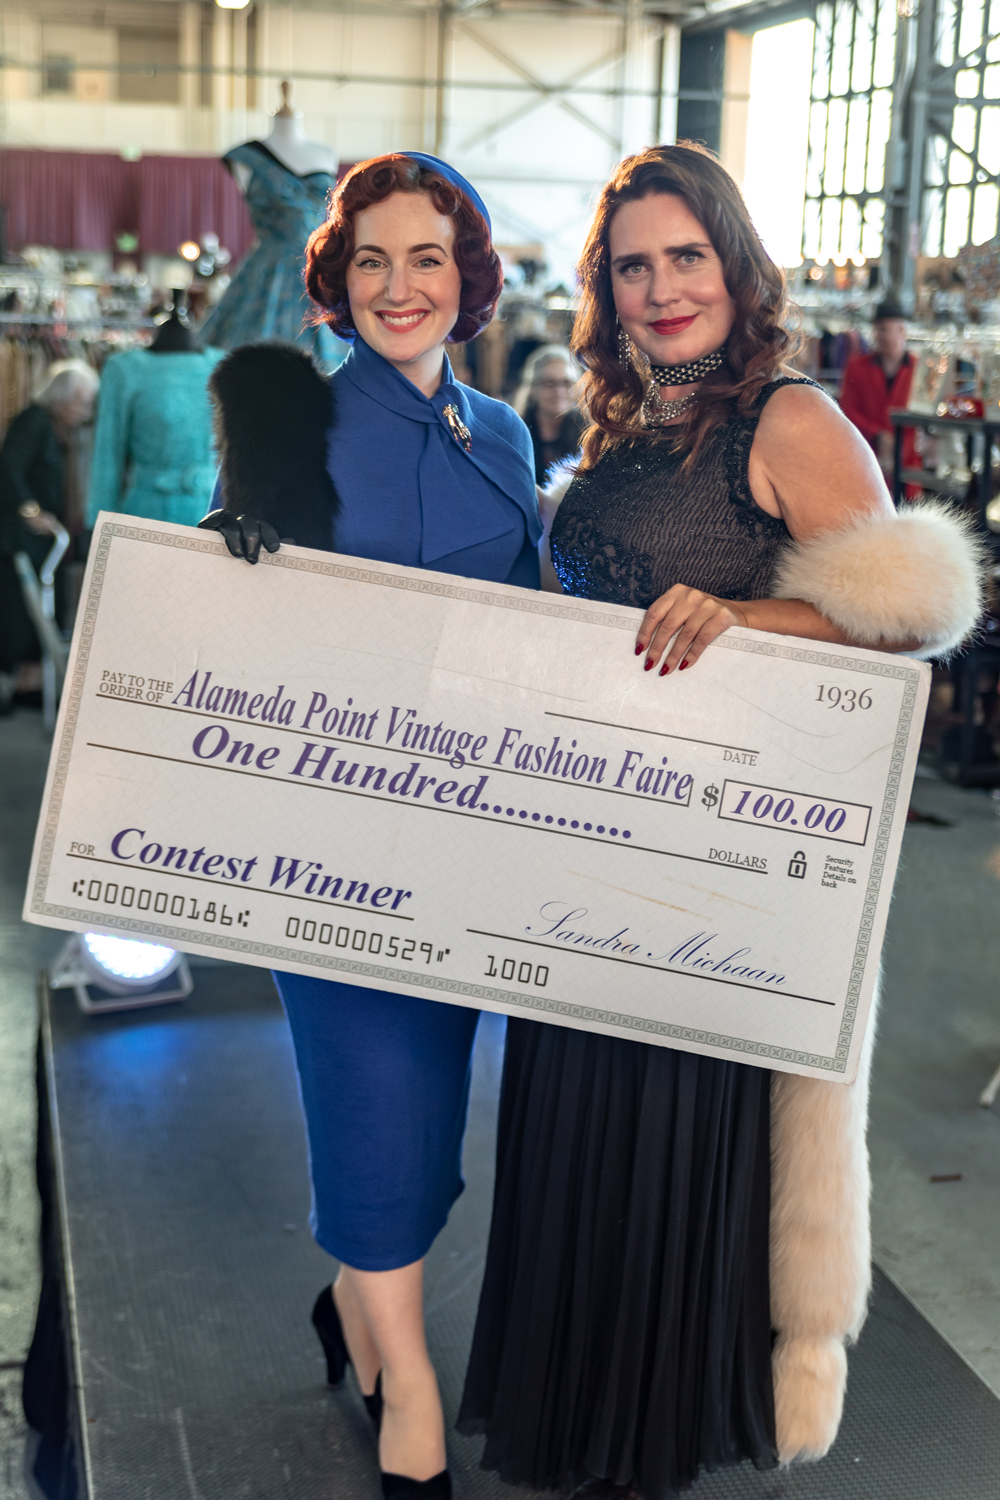 DAISY_COBY_2018_ALAMEDA_VINATAGE_FASHION_FAIRE_0813Resized.jpg